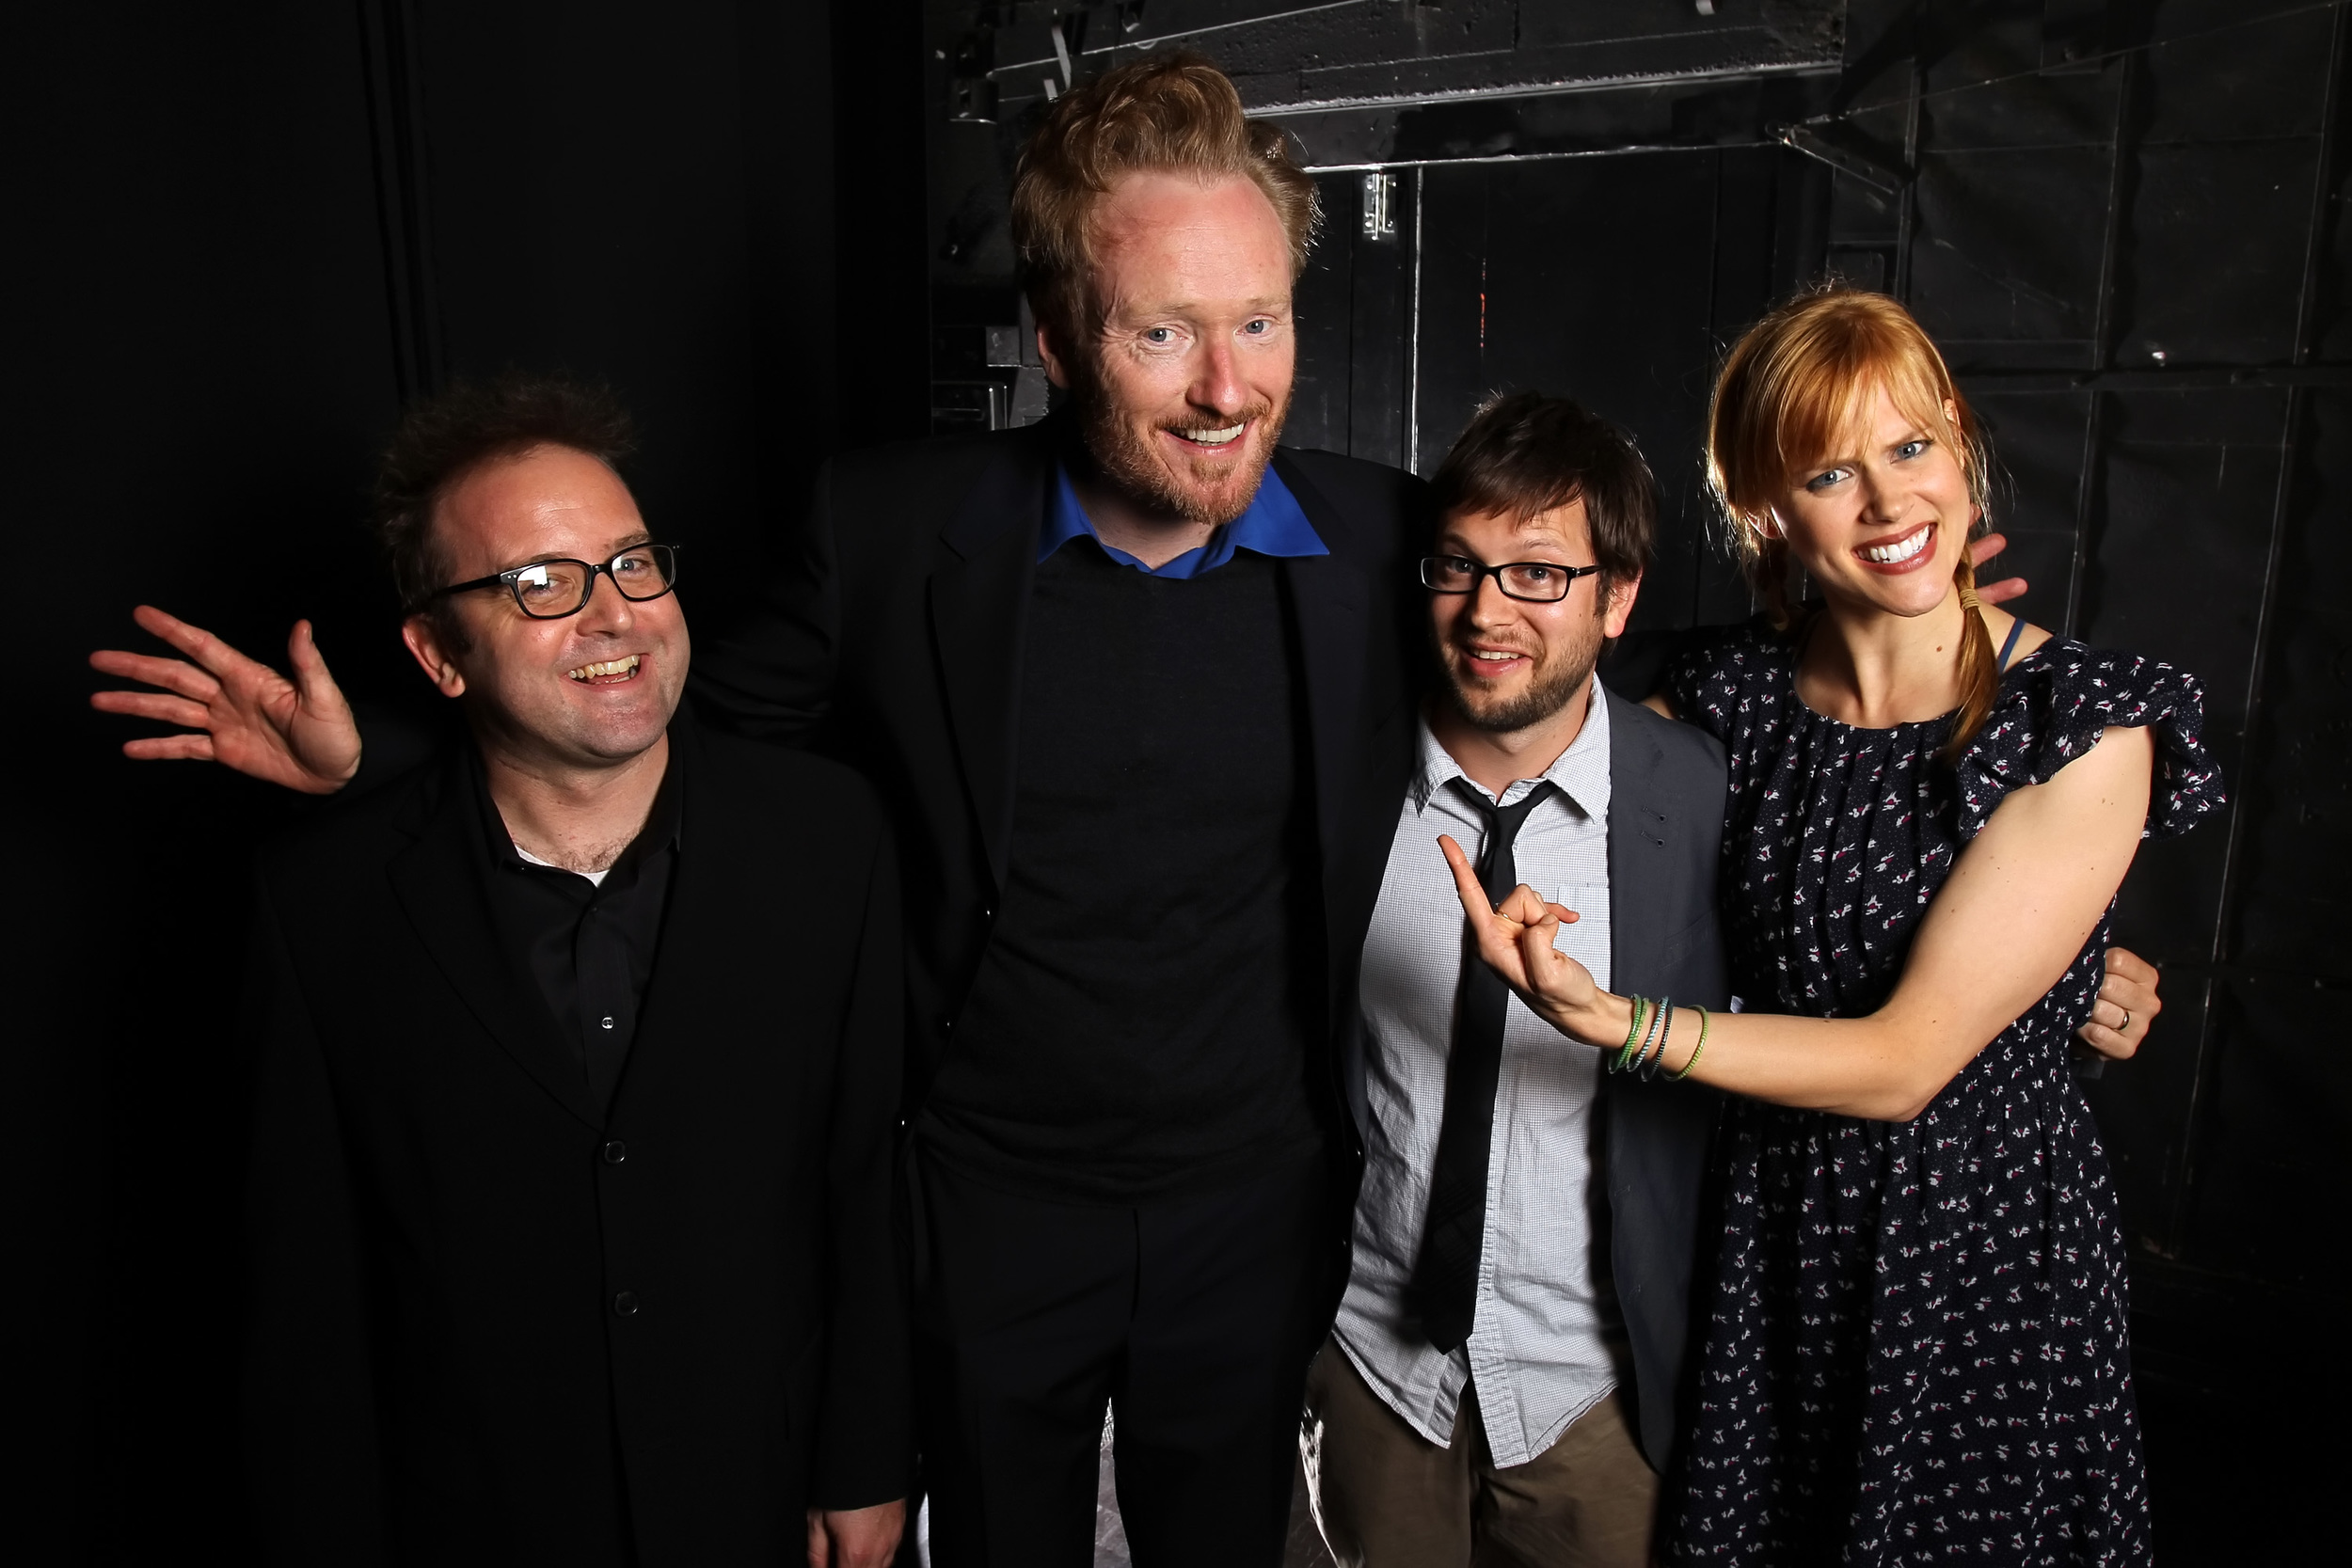 David Owen, Conan O'Brien and Janet Varney. Photo by Jakub Mosur.